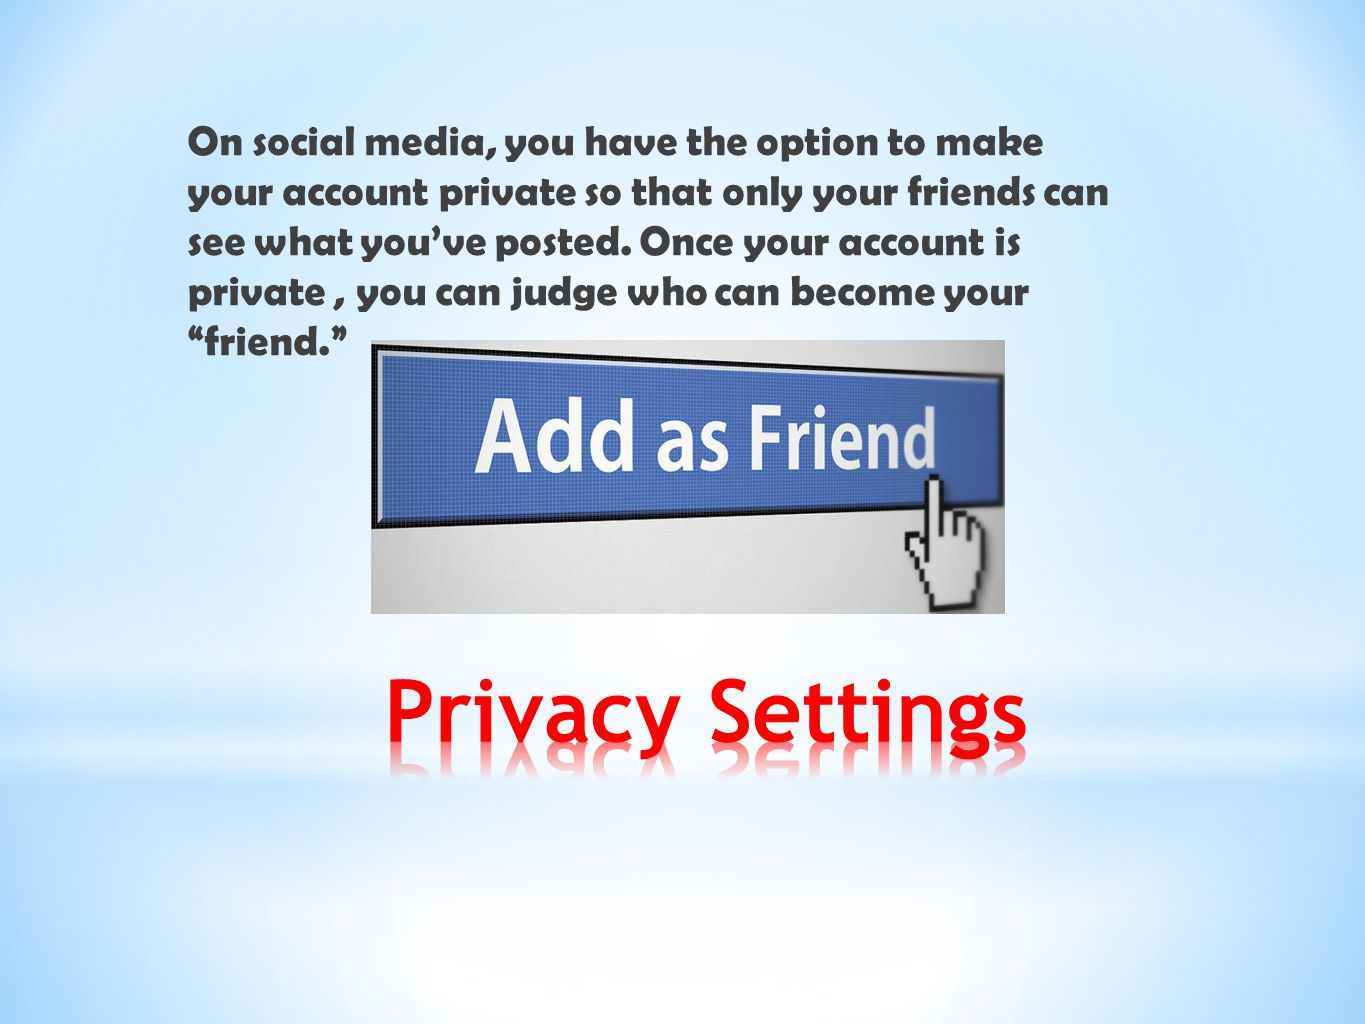 On social media, you have the option to make your account private so that only your friends can see what you've posted. Once your account is private , you can judge who can become your friend.